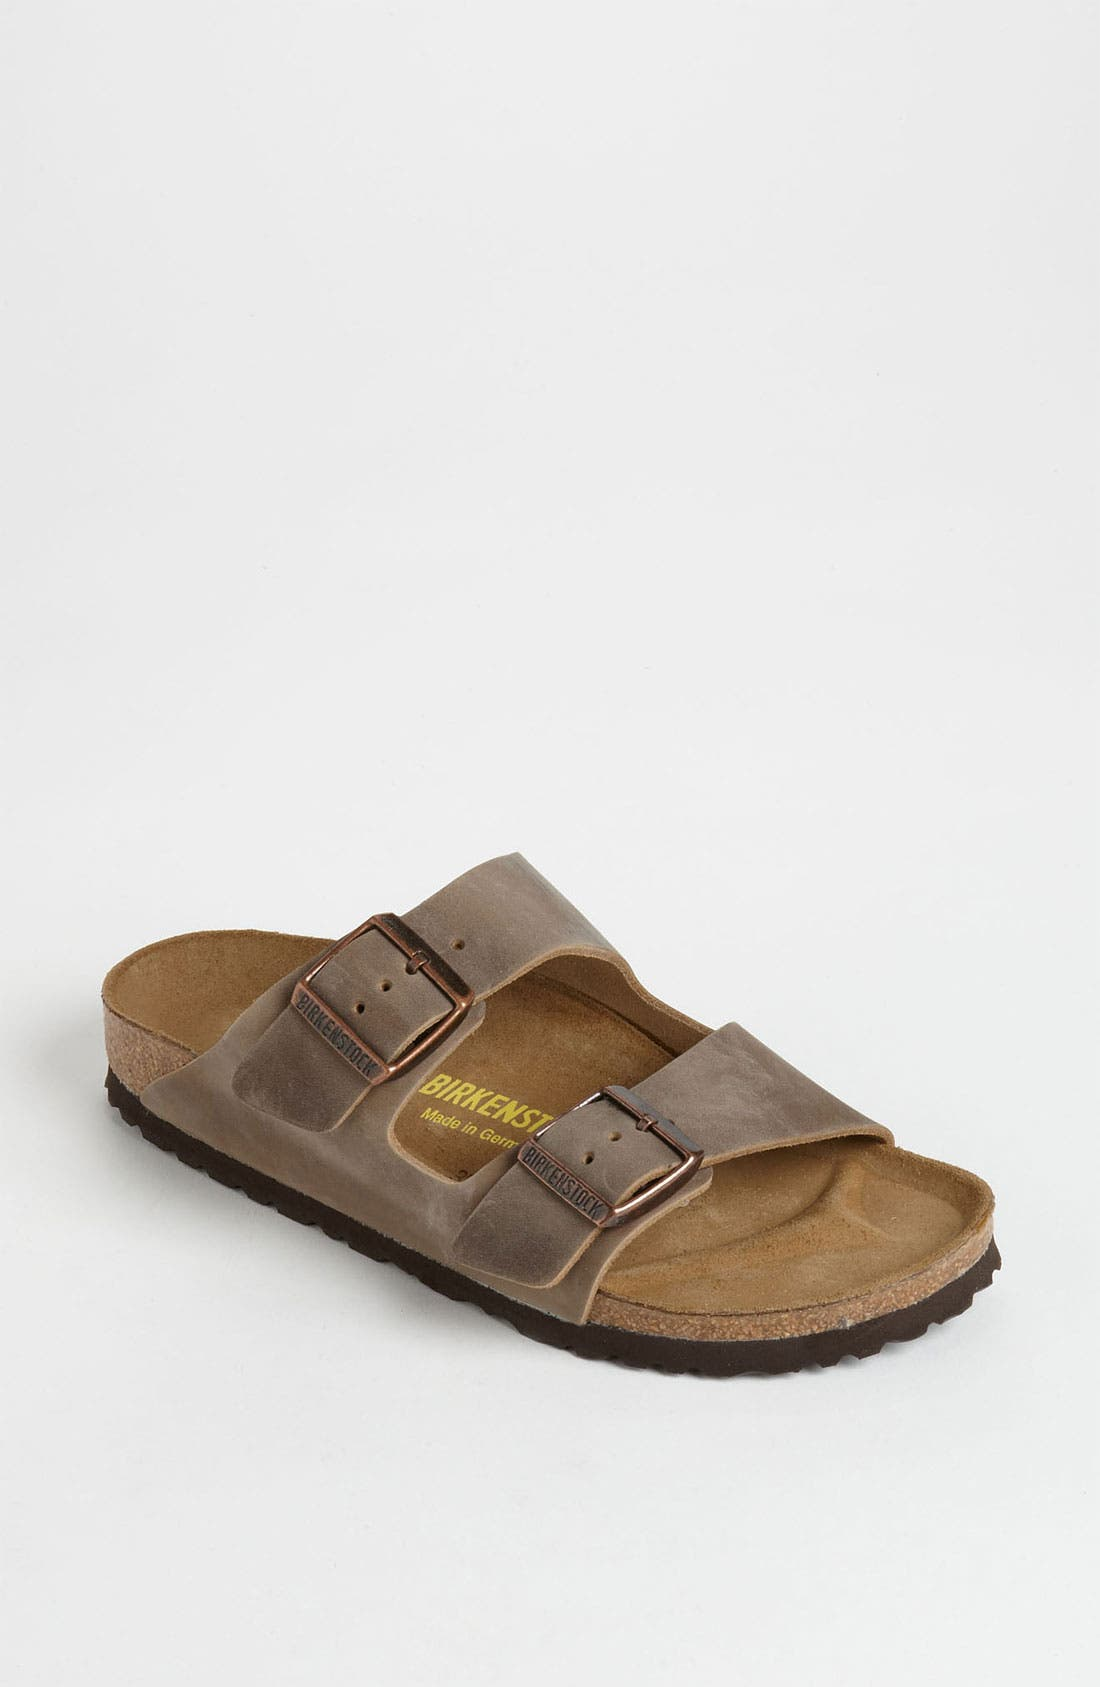 Alternate Image 1 Selected - Birkenstock Arizona Sandal (Women)